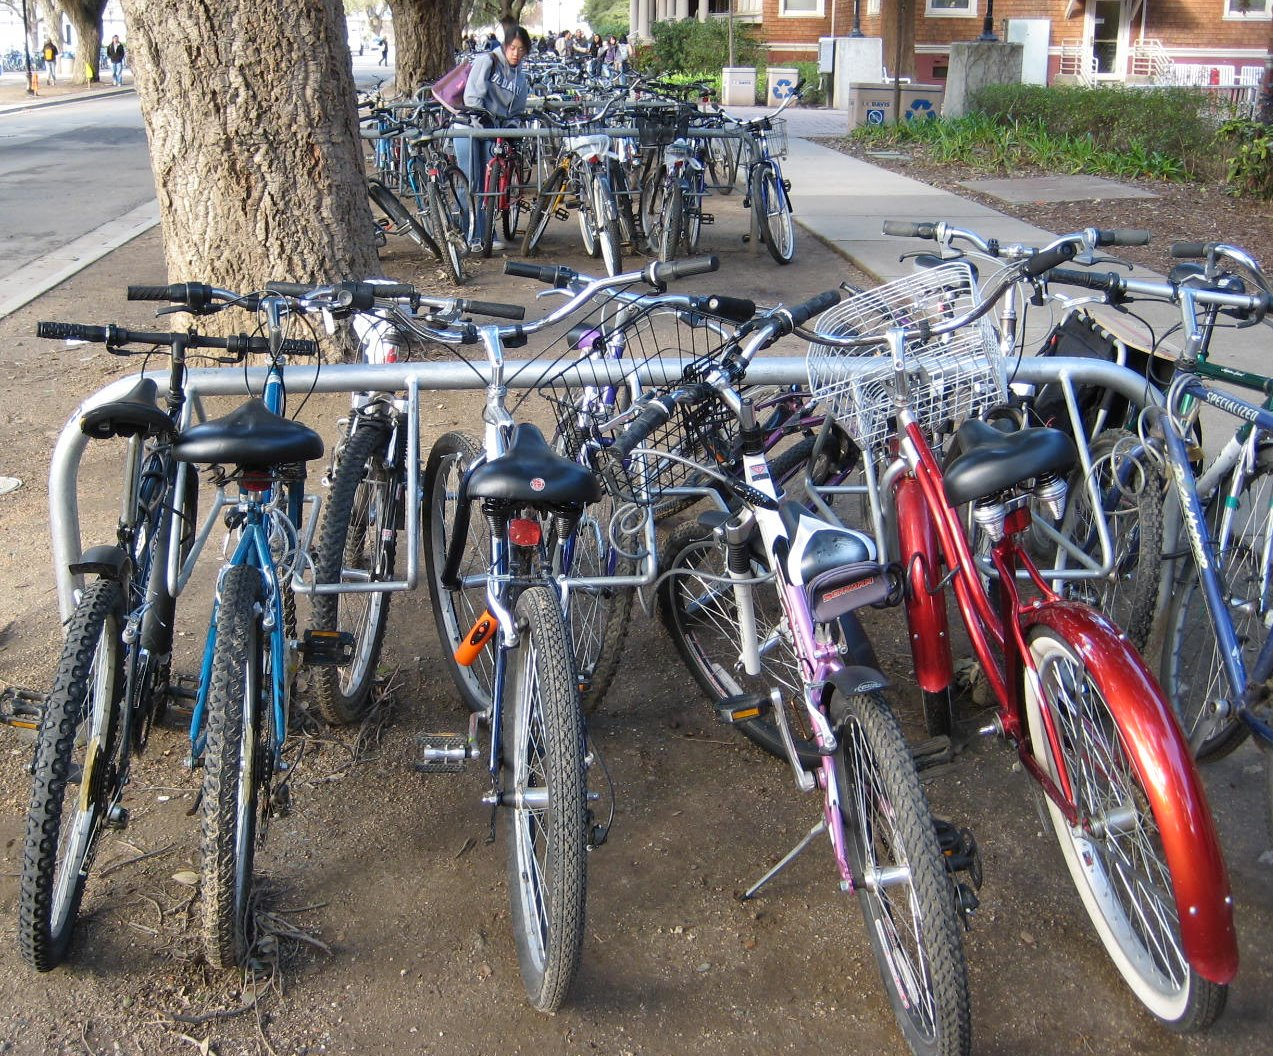 Bikes Uc Davis the UC Davis campus